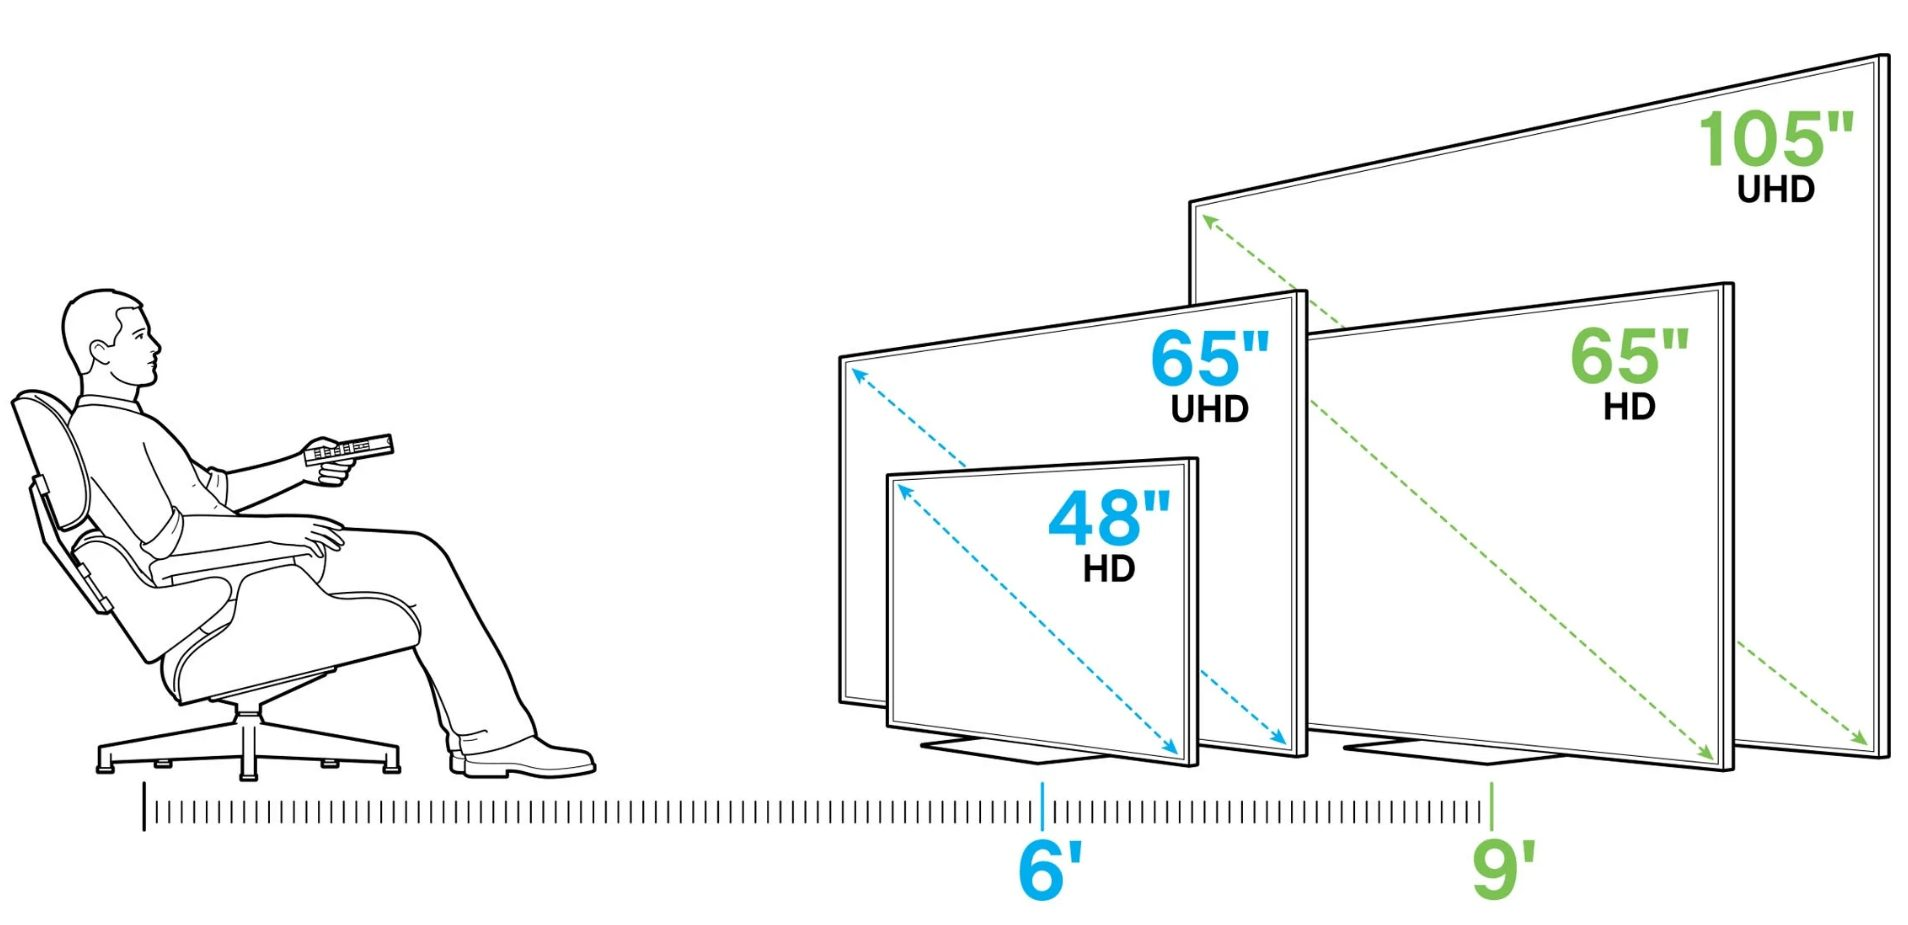 The correct distance between the seats and the television